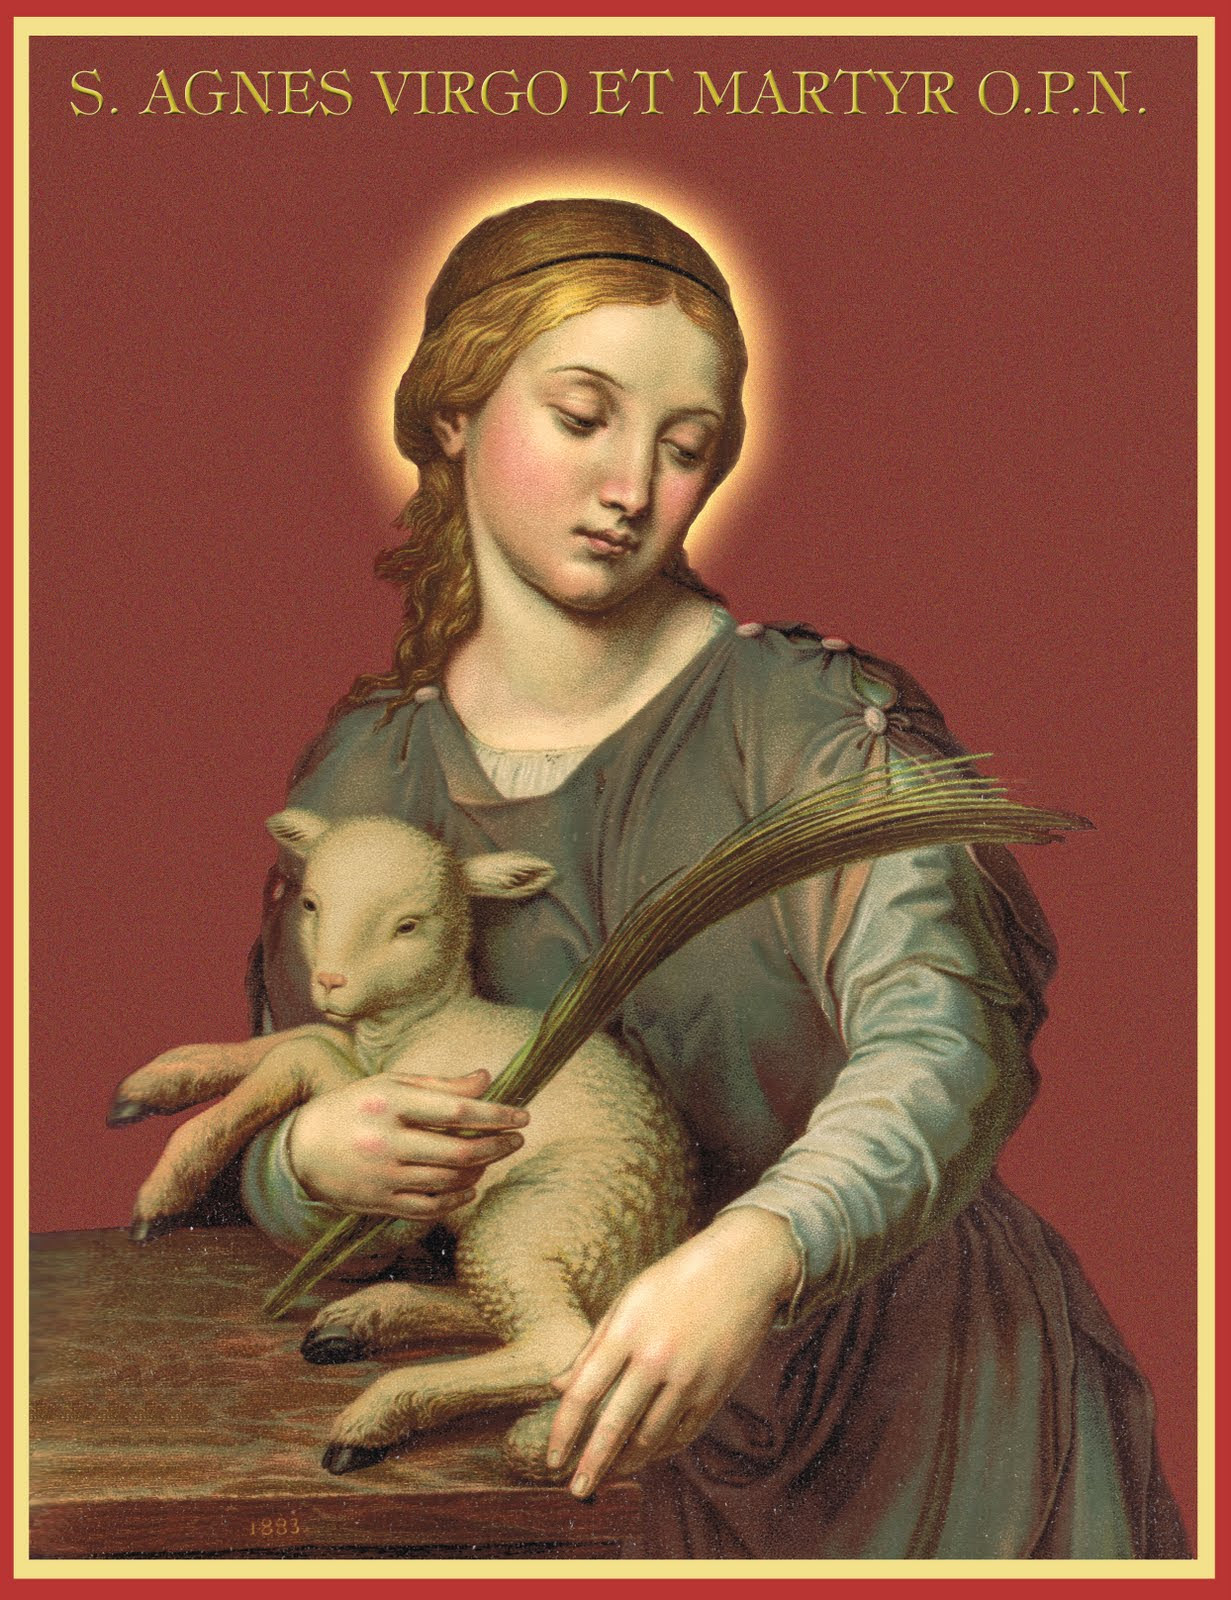 ST. AGNES of Rome, Virgin Martyr